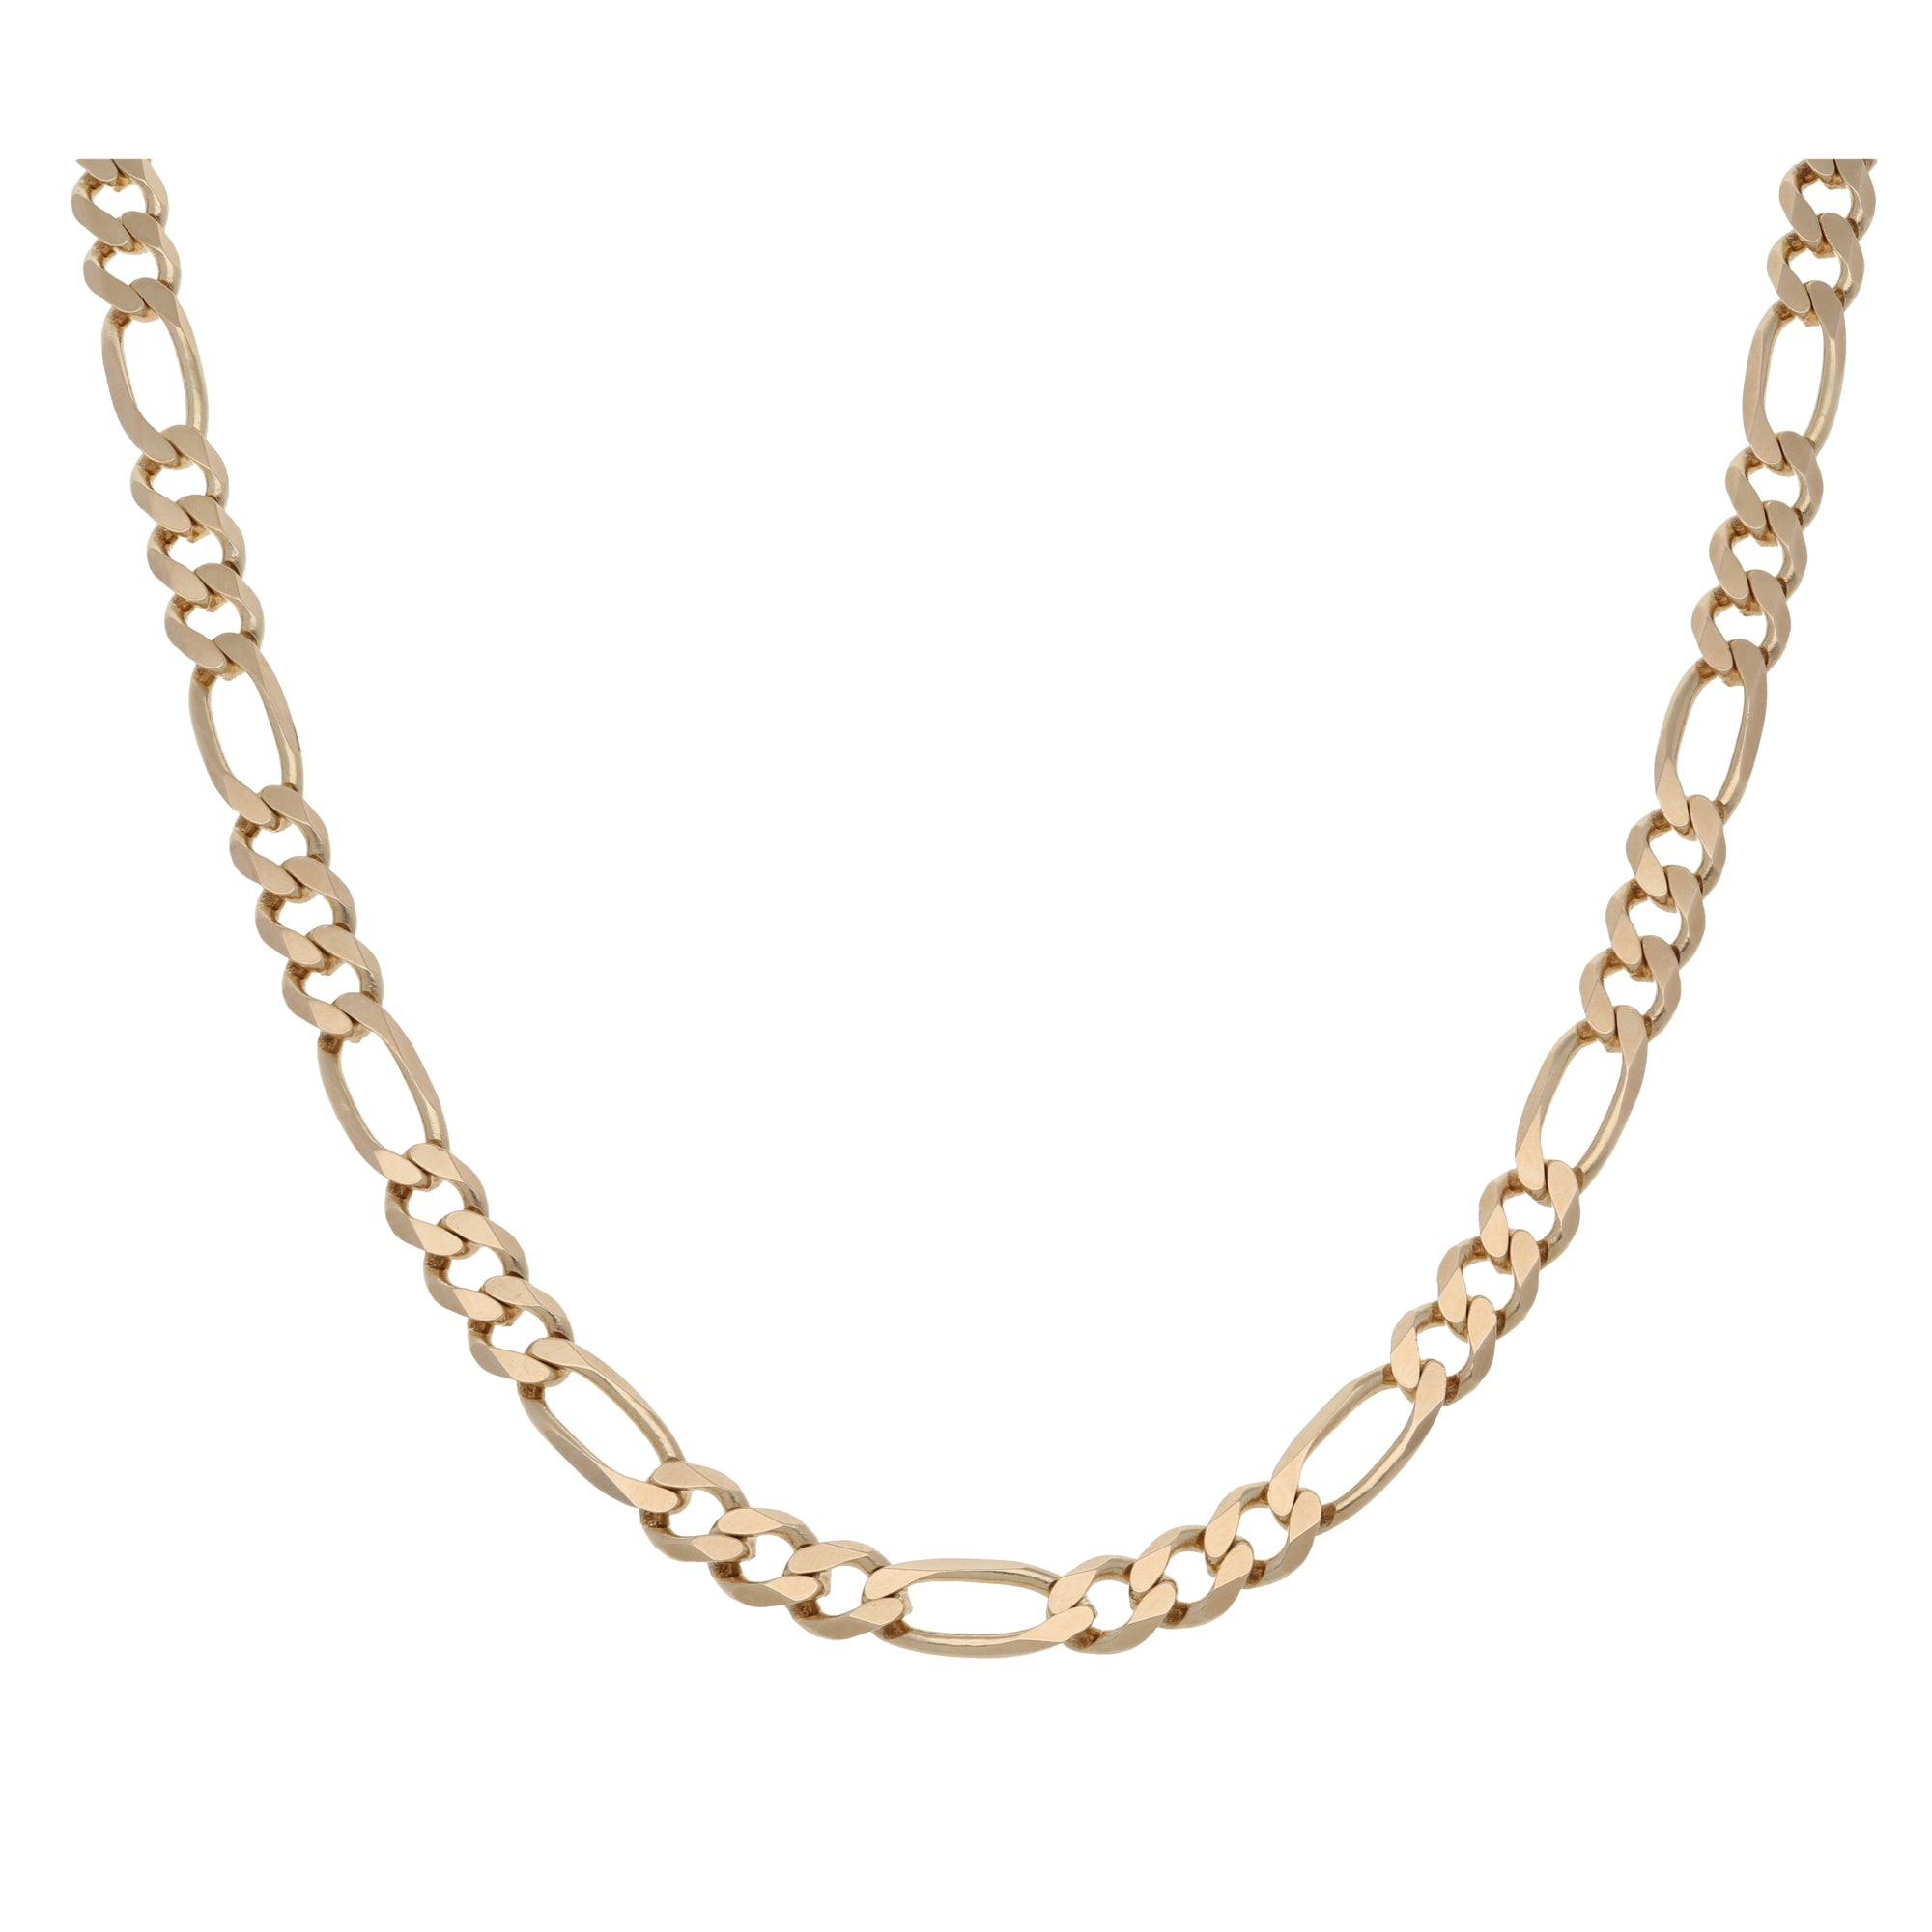 9ct Gold Ladies Curb Chain 16